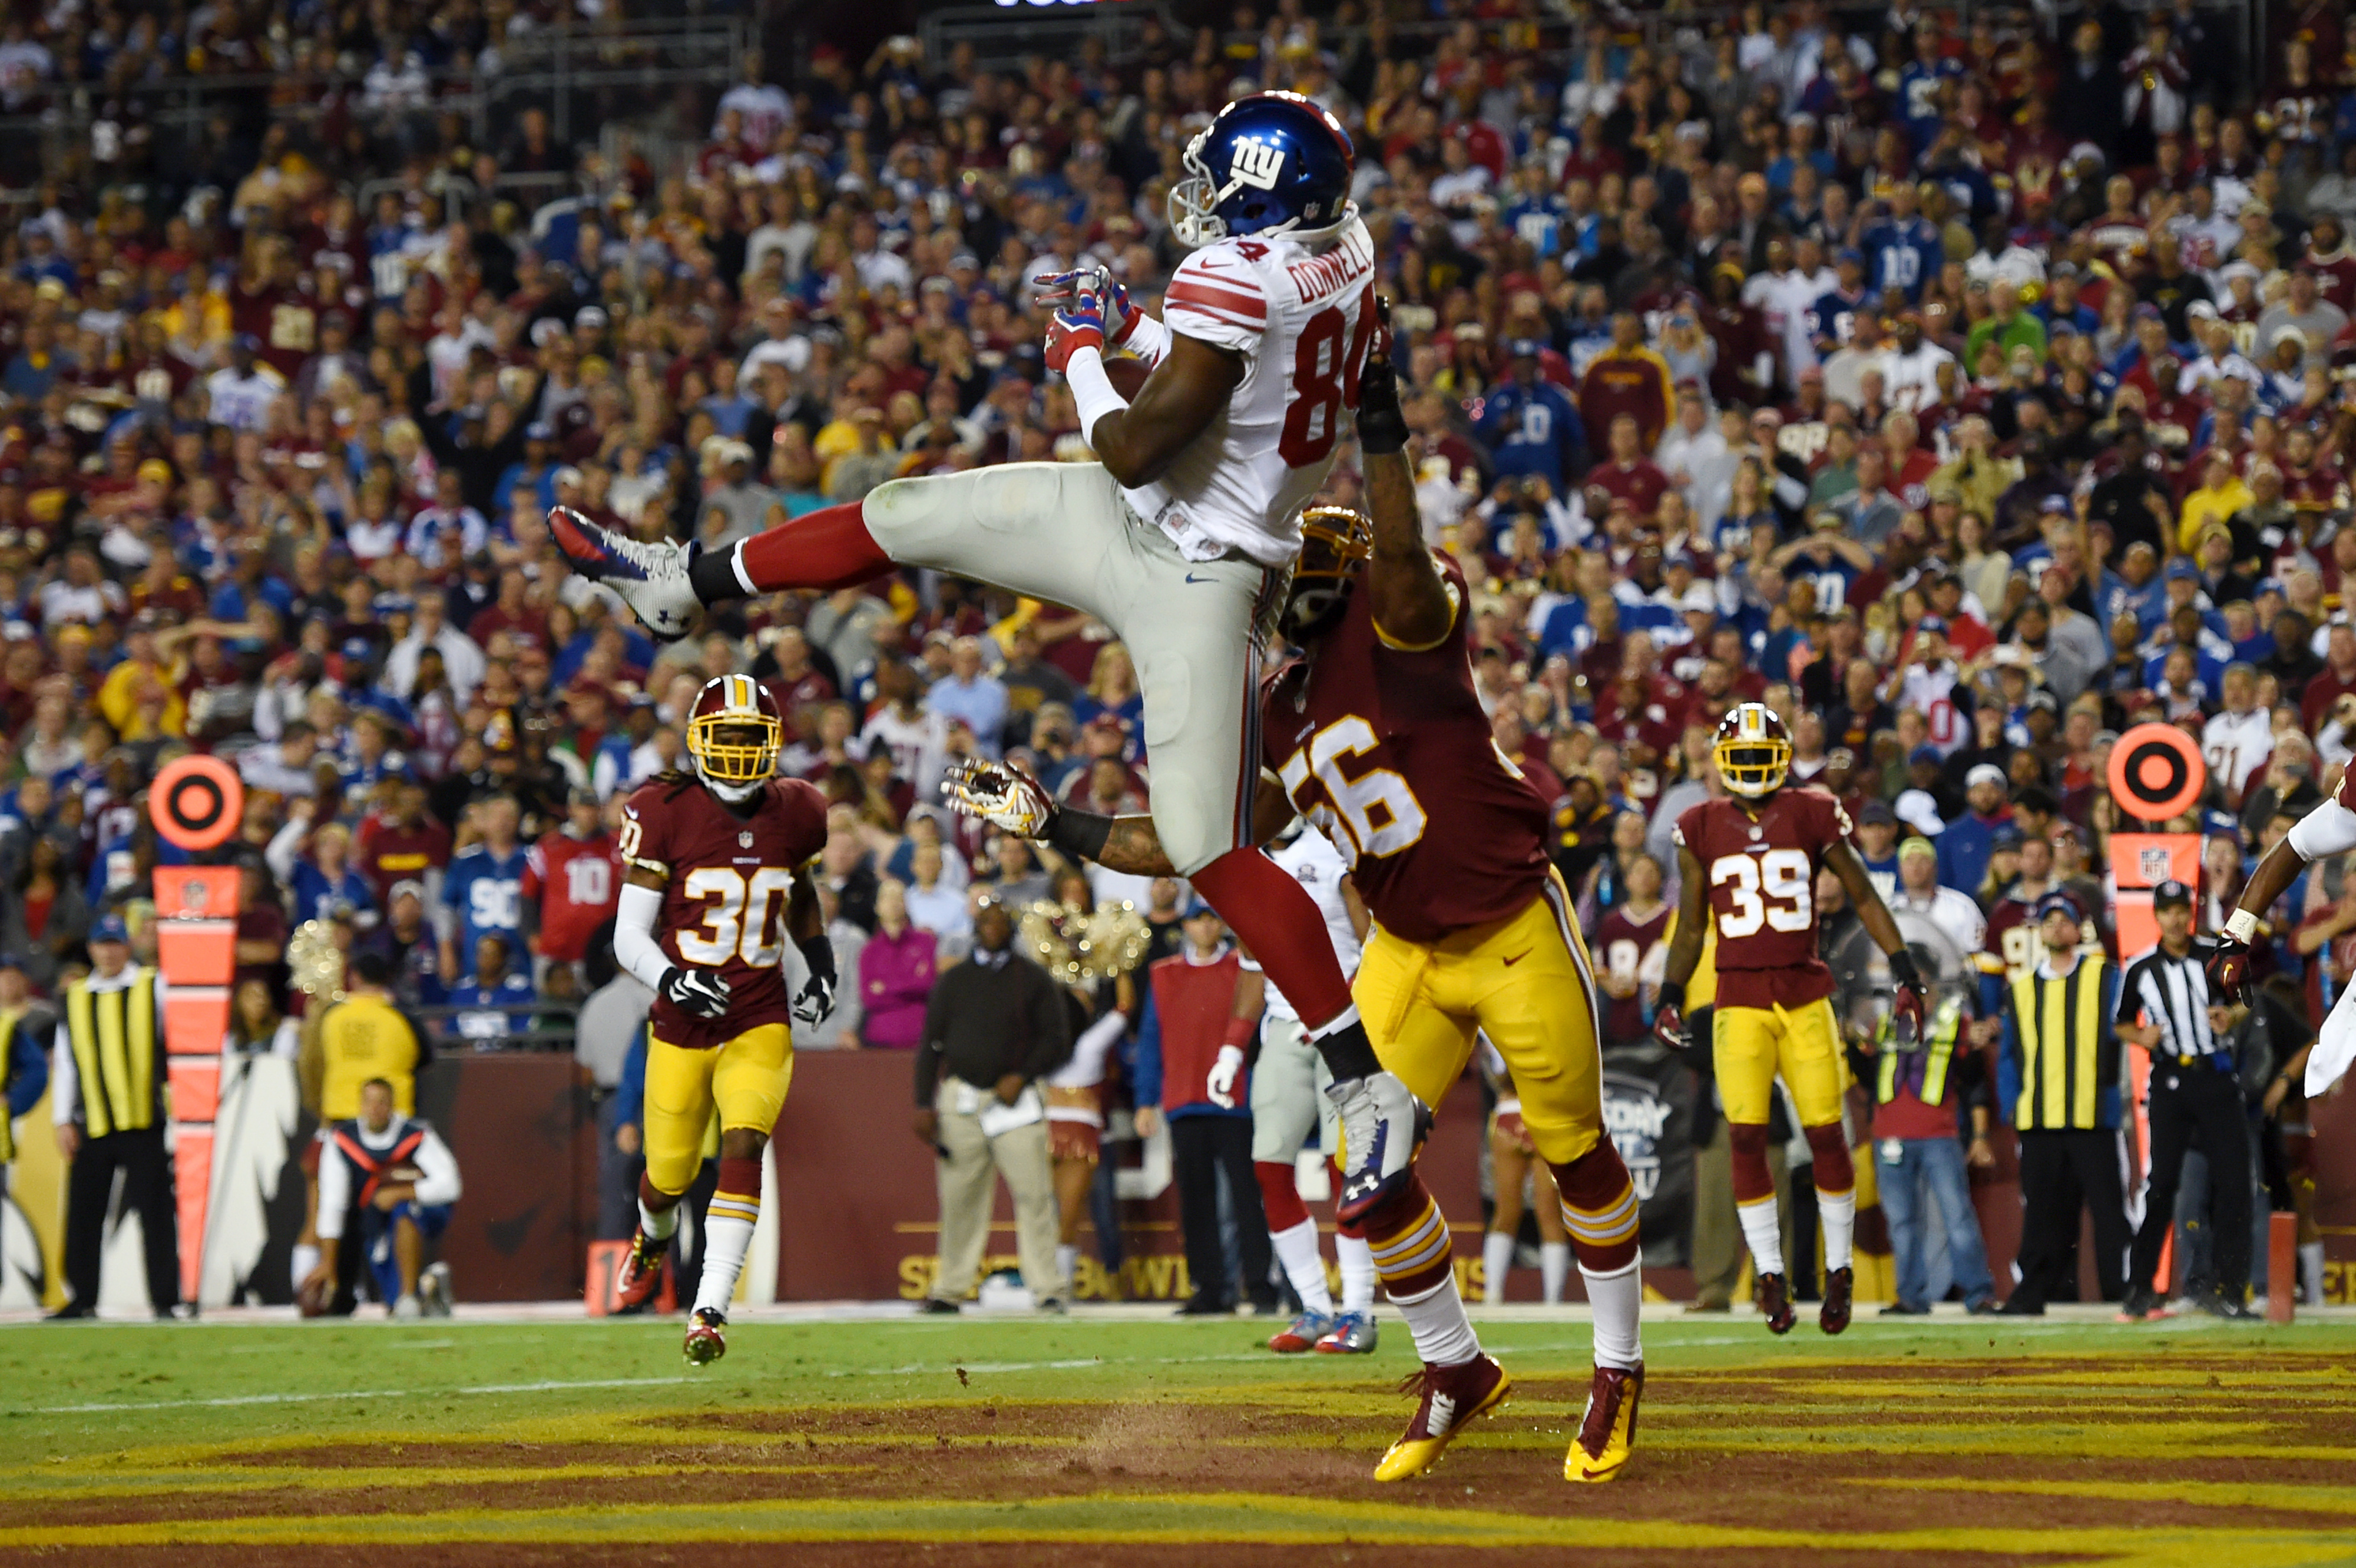 Larry Donnell catches a touchdown pass